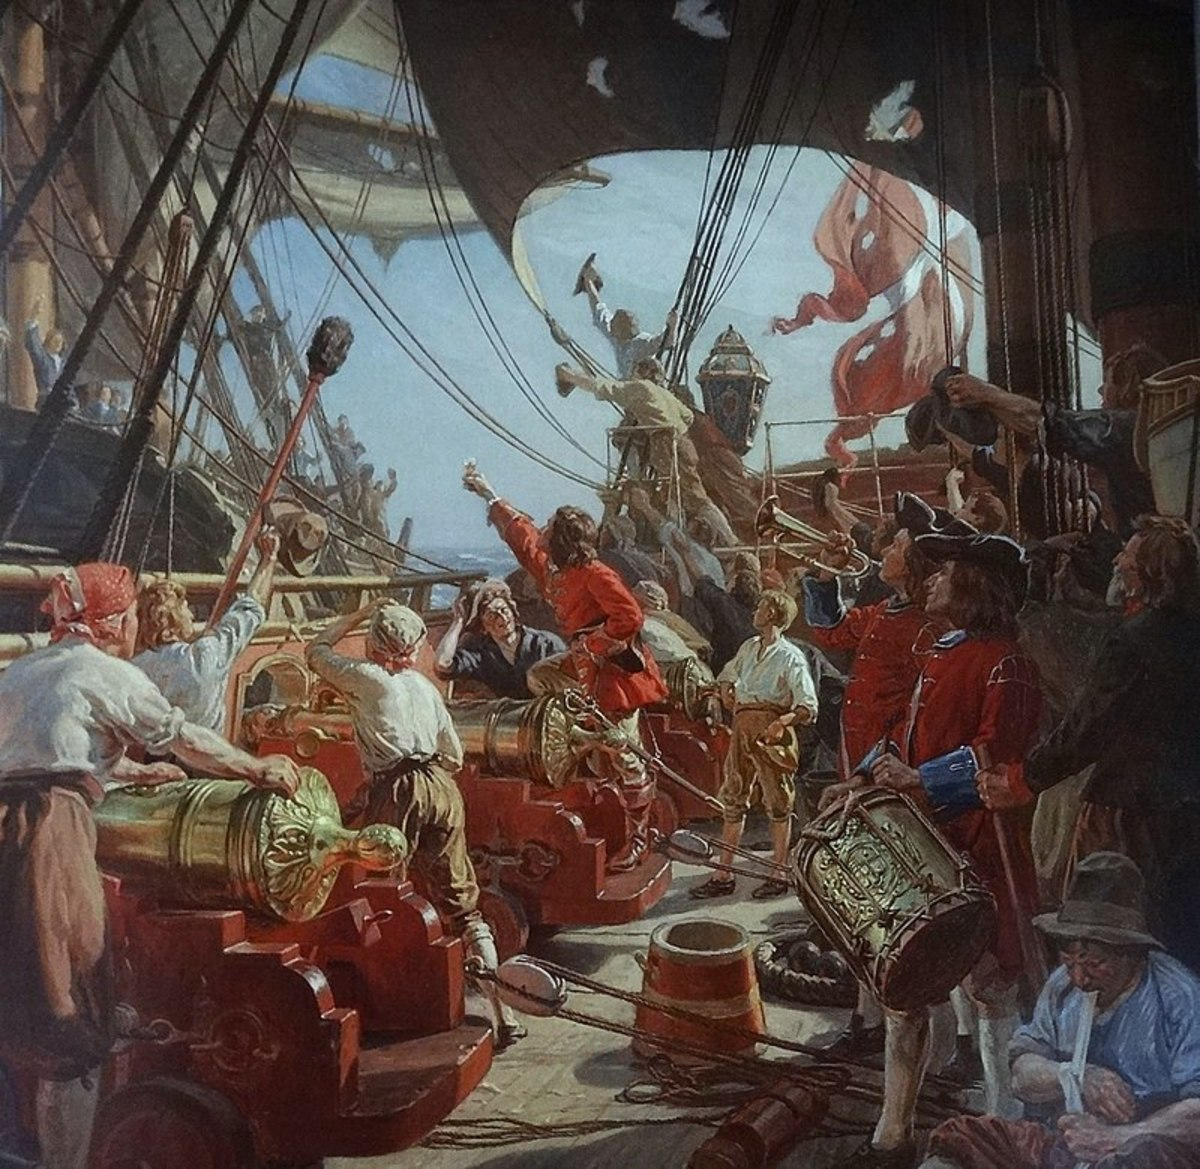 Queen Elizabeth's Pirates: Heroes or Villains?